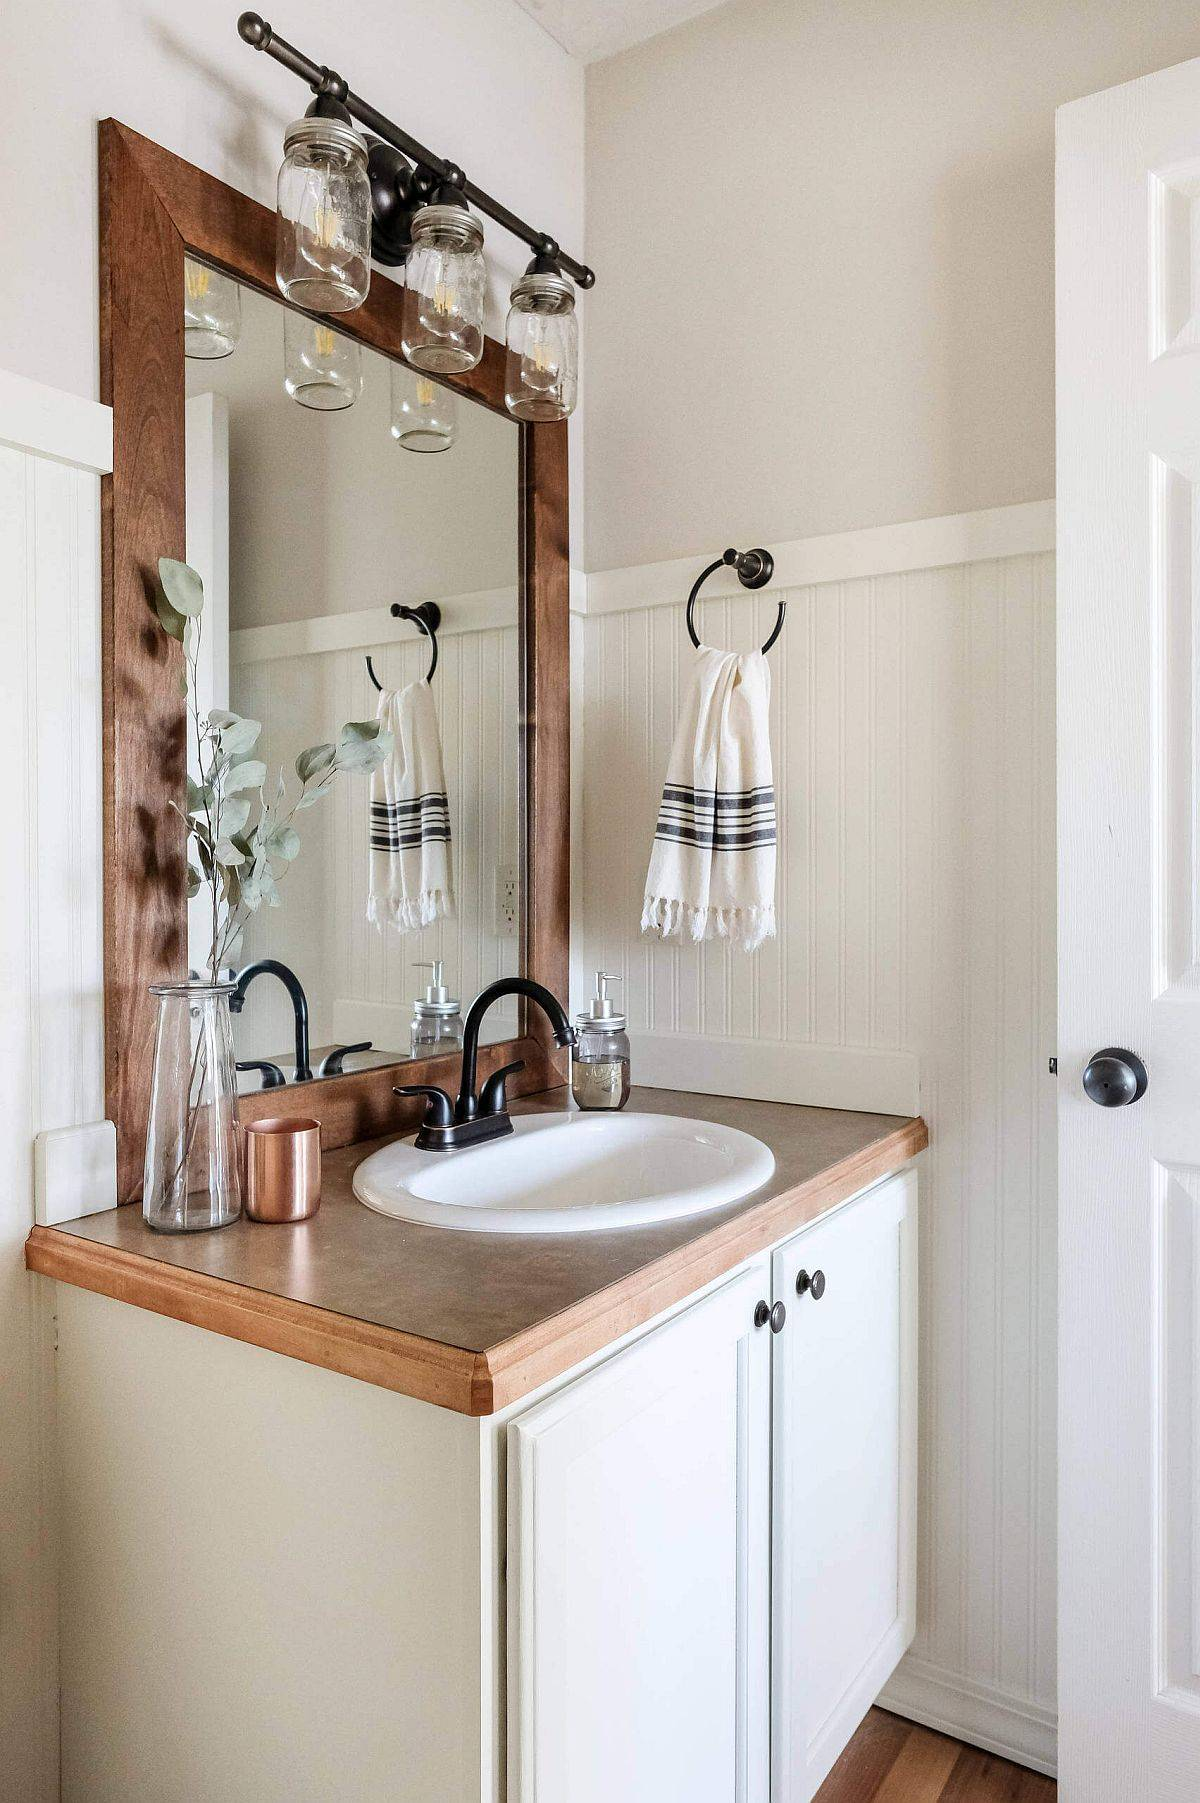 Innovative-lighting-with-farmhouse-influences-and-small-vanity-in-the-corner-make-an-impact-in-here-72244